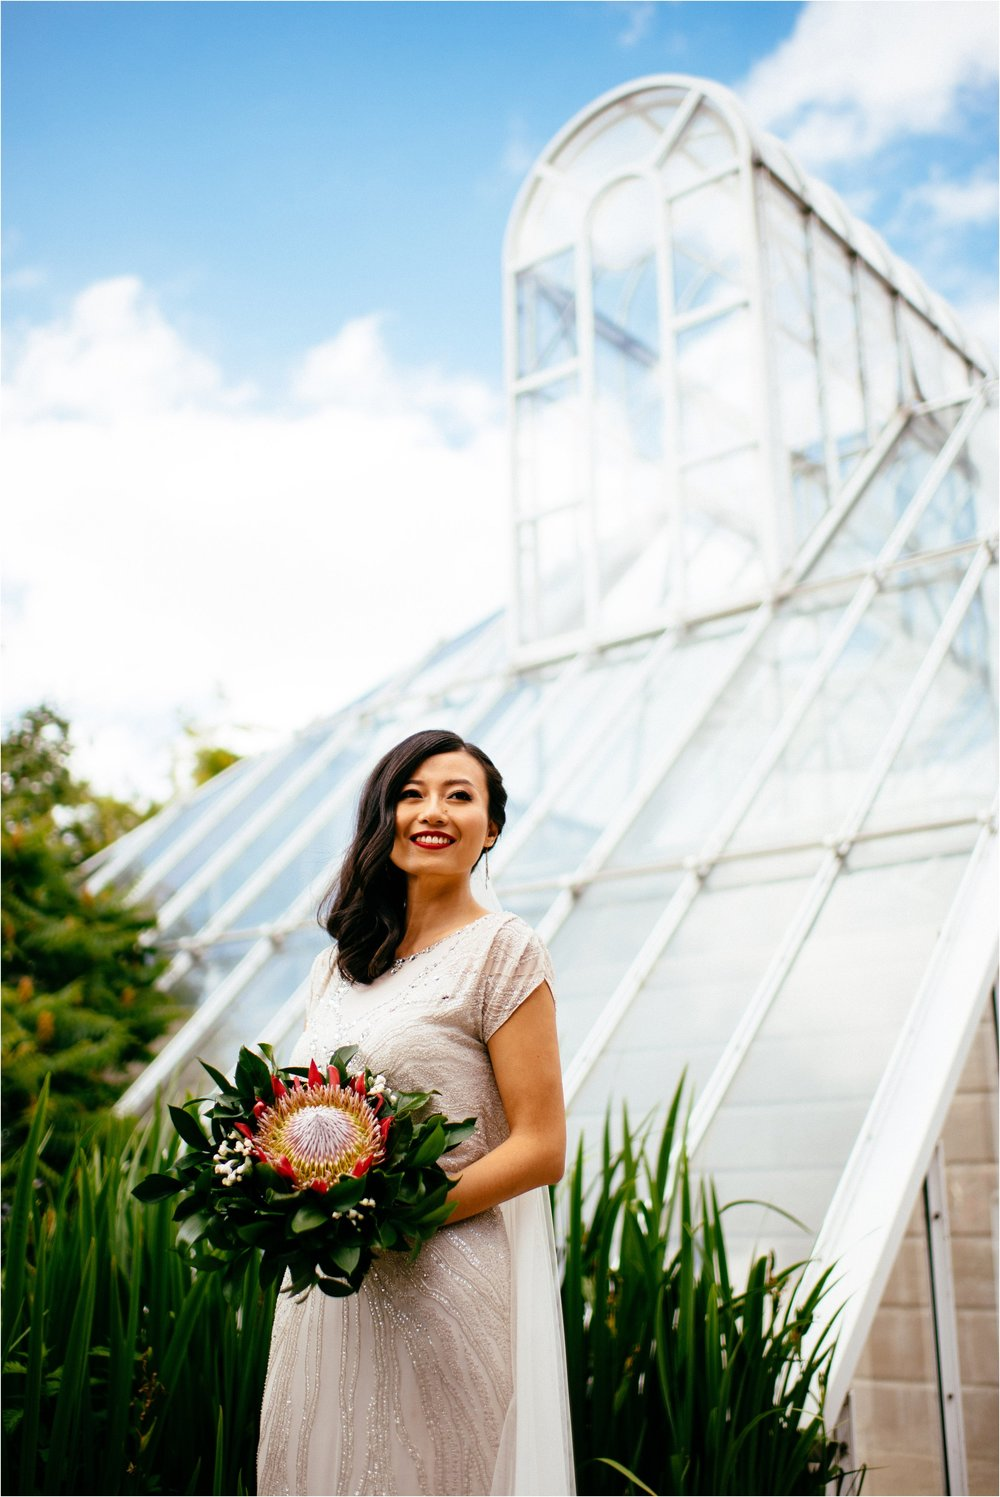 Kew Garden wedding photographer_0134.jpg